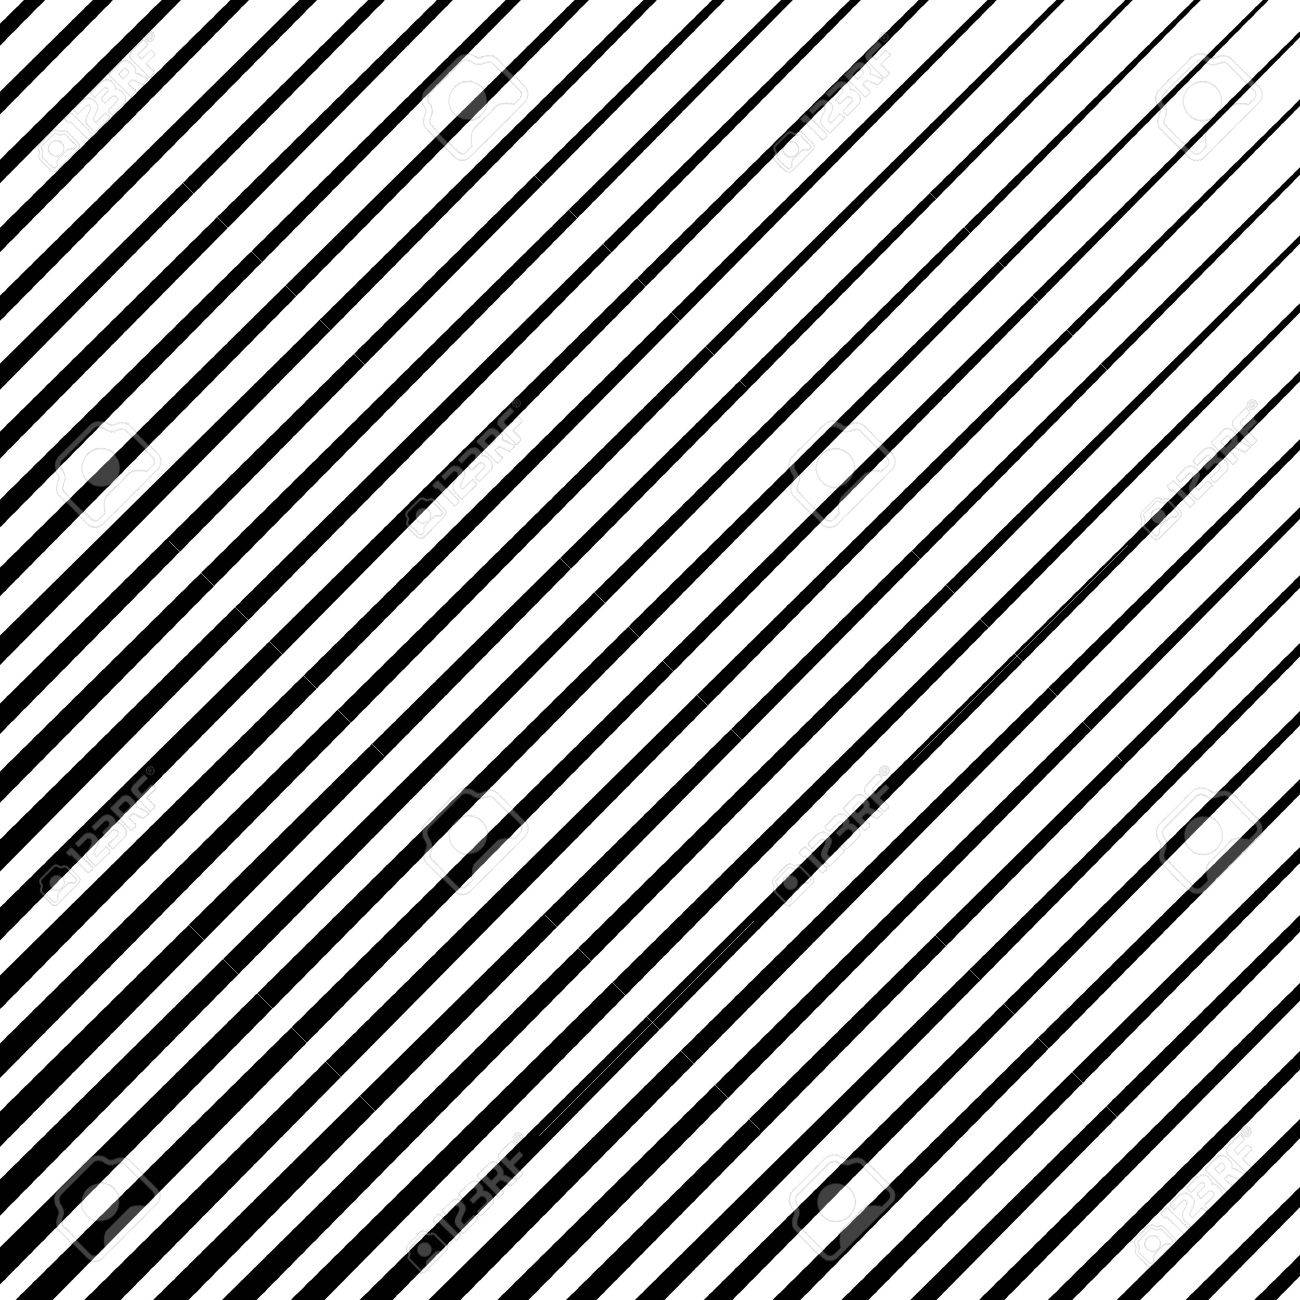 straight diagonal stripes parallel lines abstract geometric rh 123rf com vector stripes radial vector stripes abstract free